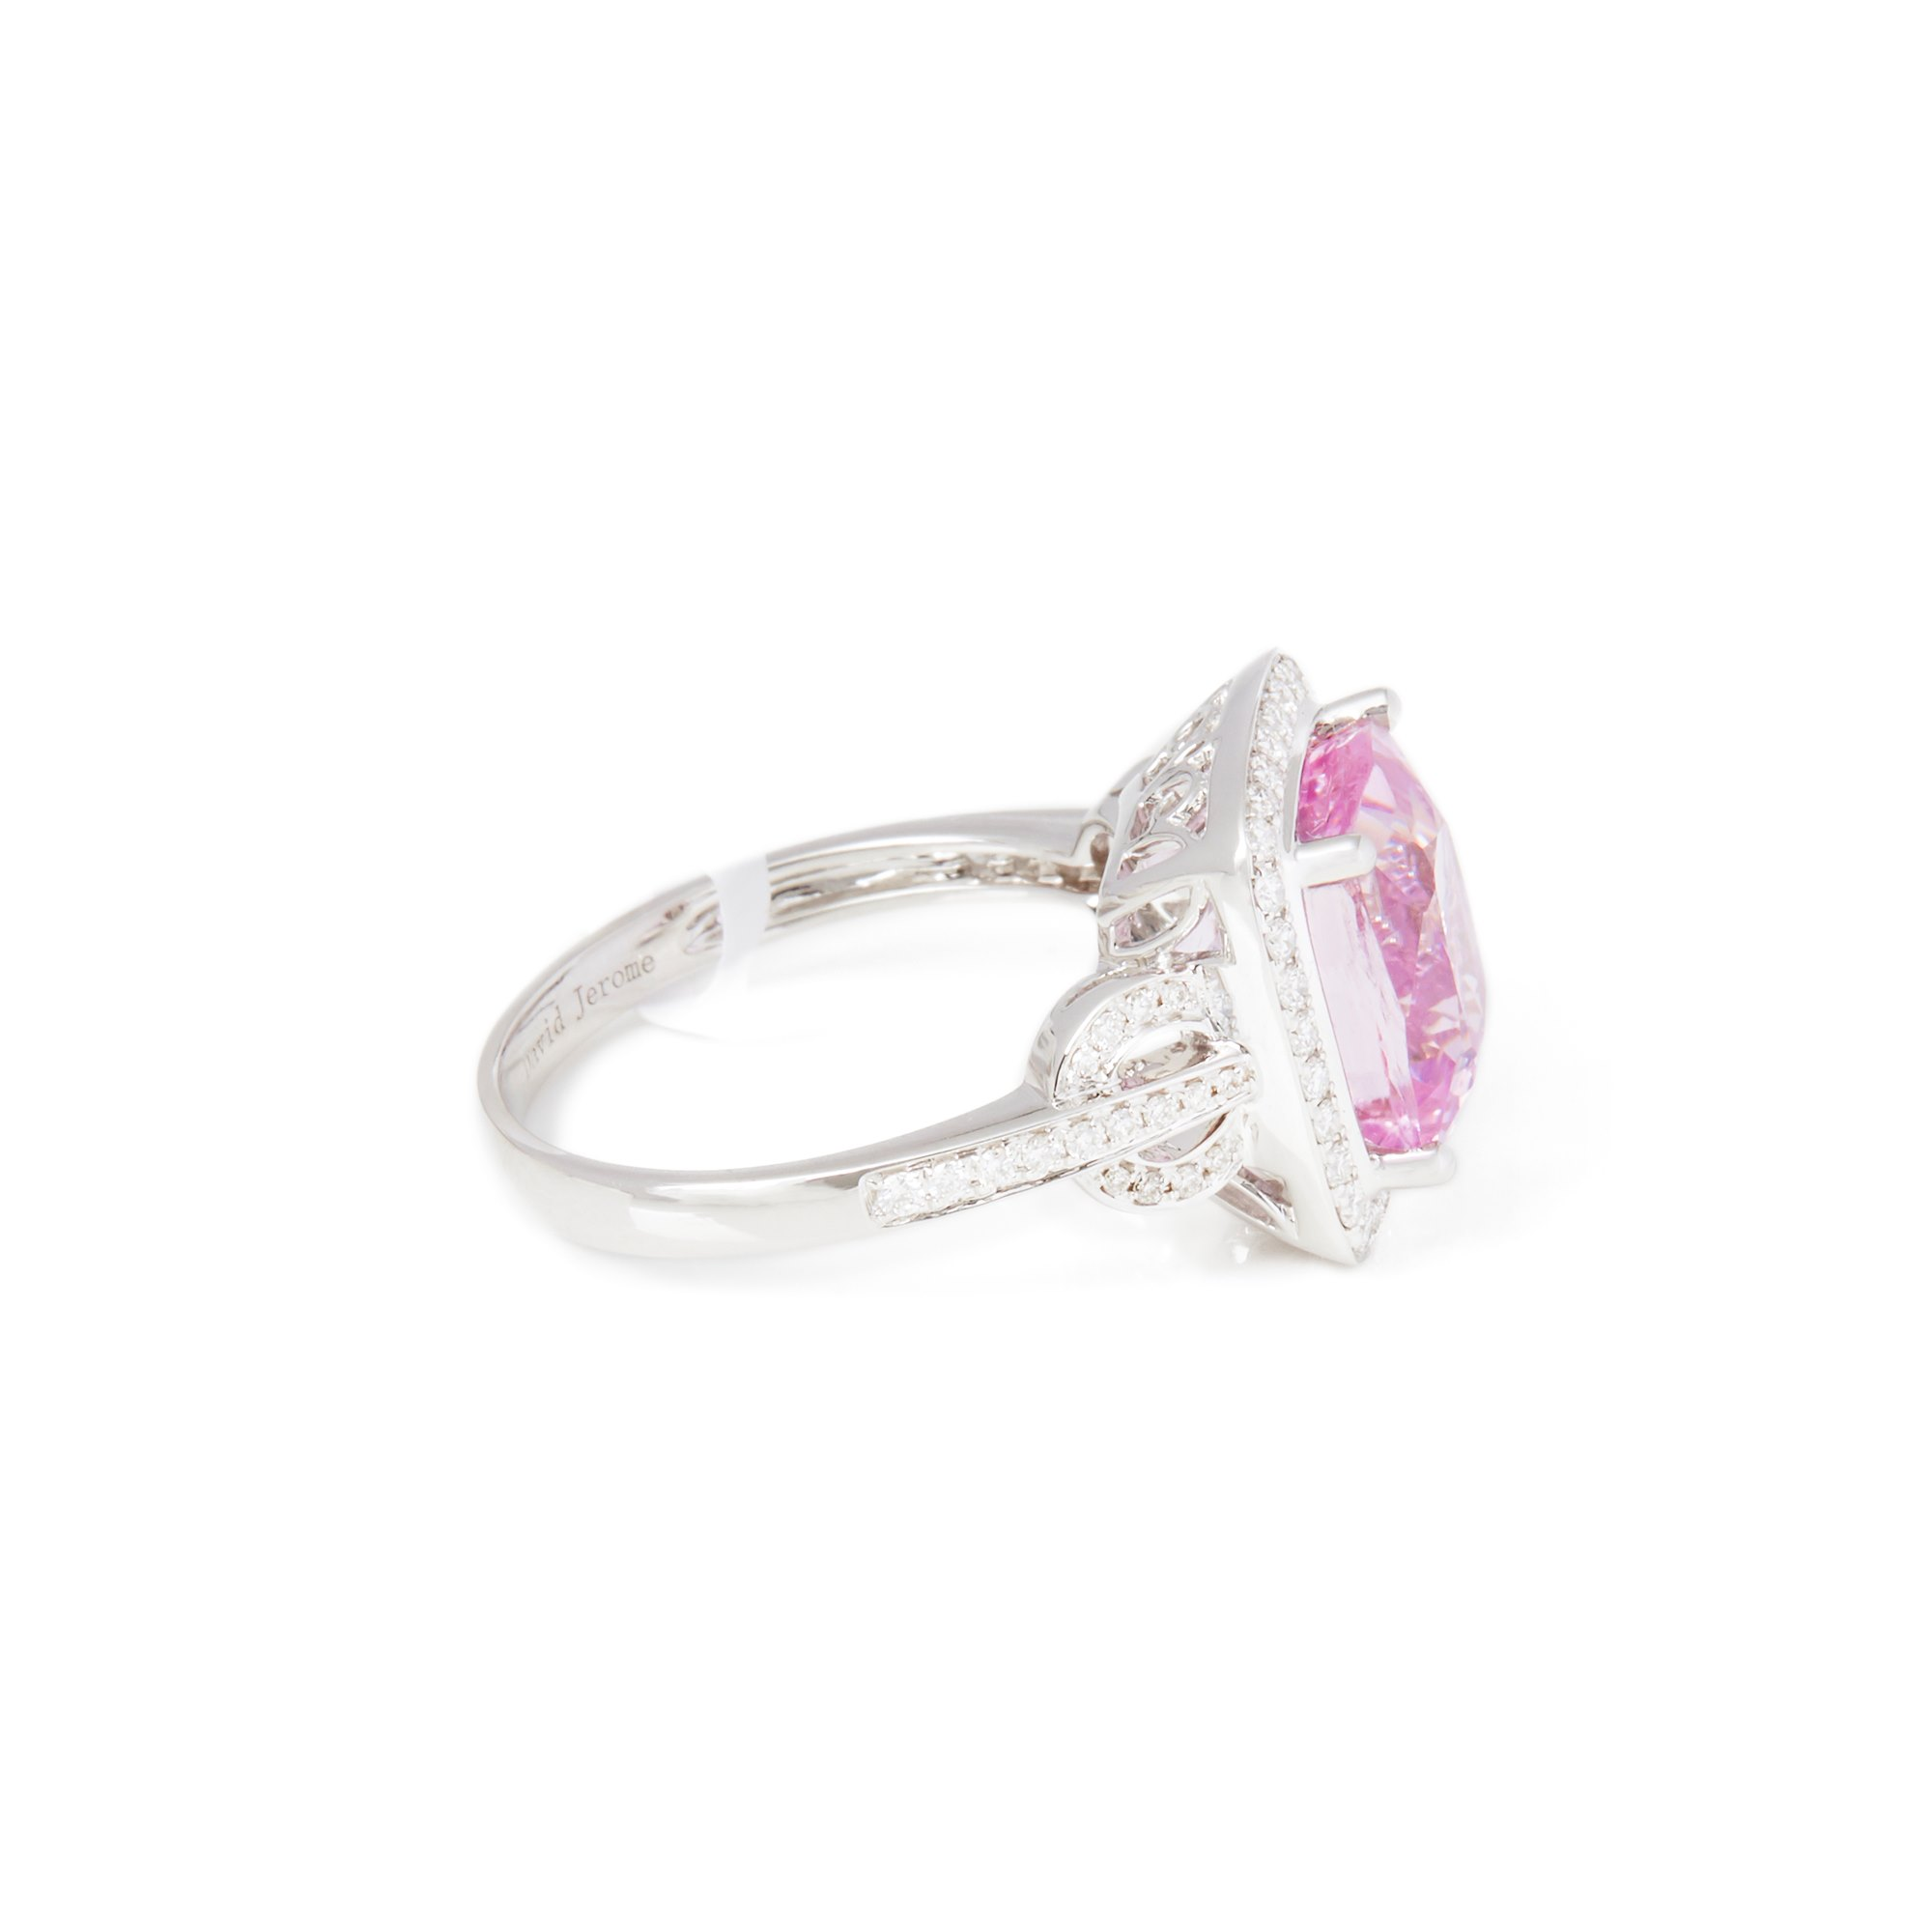 David Jerome Certified 5.69ct Cushion Cut Kunzite and Diamond 18ct gold Ring